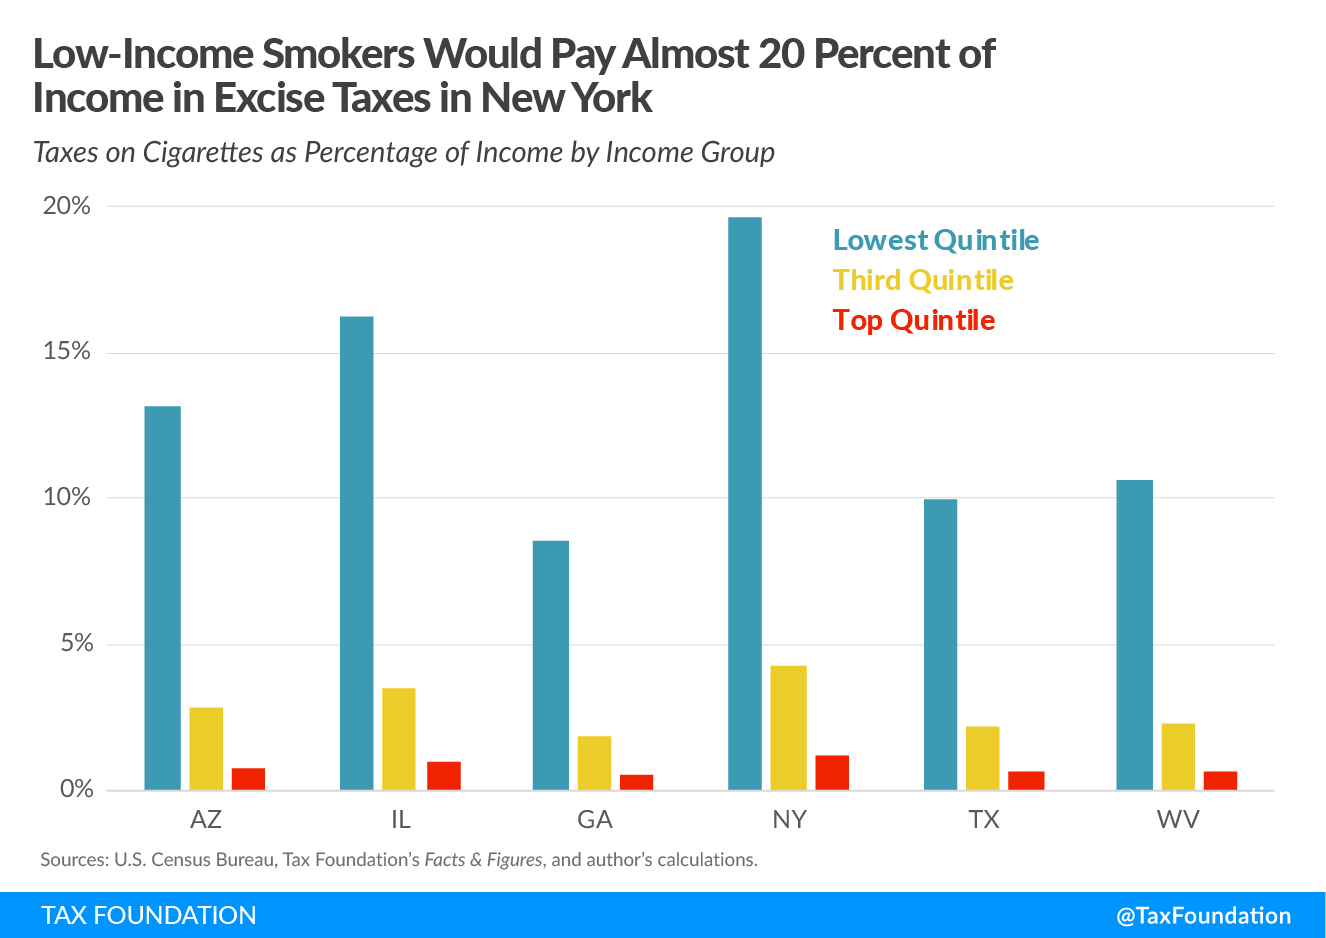 Low-Income Smokers Would Pay Almost 20 Percent of Income in Excise Taxes in New York. Federal tobacco tax proposal, Tobacco Tax Equity Act, would impose a federal excise tax on tobacco federal cig